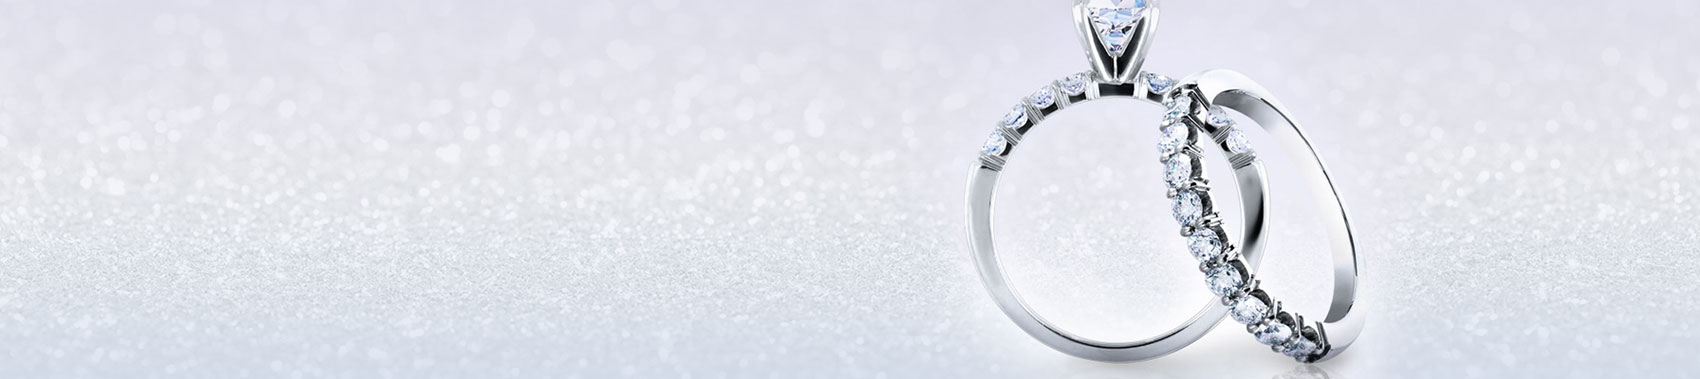 Why People Find Lightweight Diamond Jewelry More Comfortable?